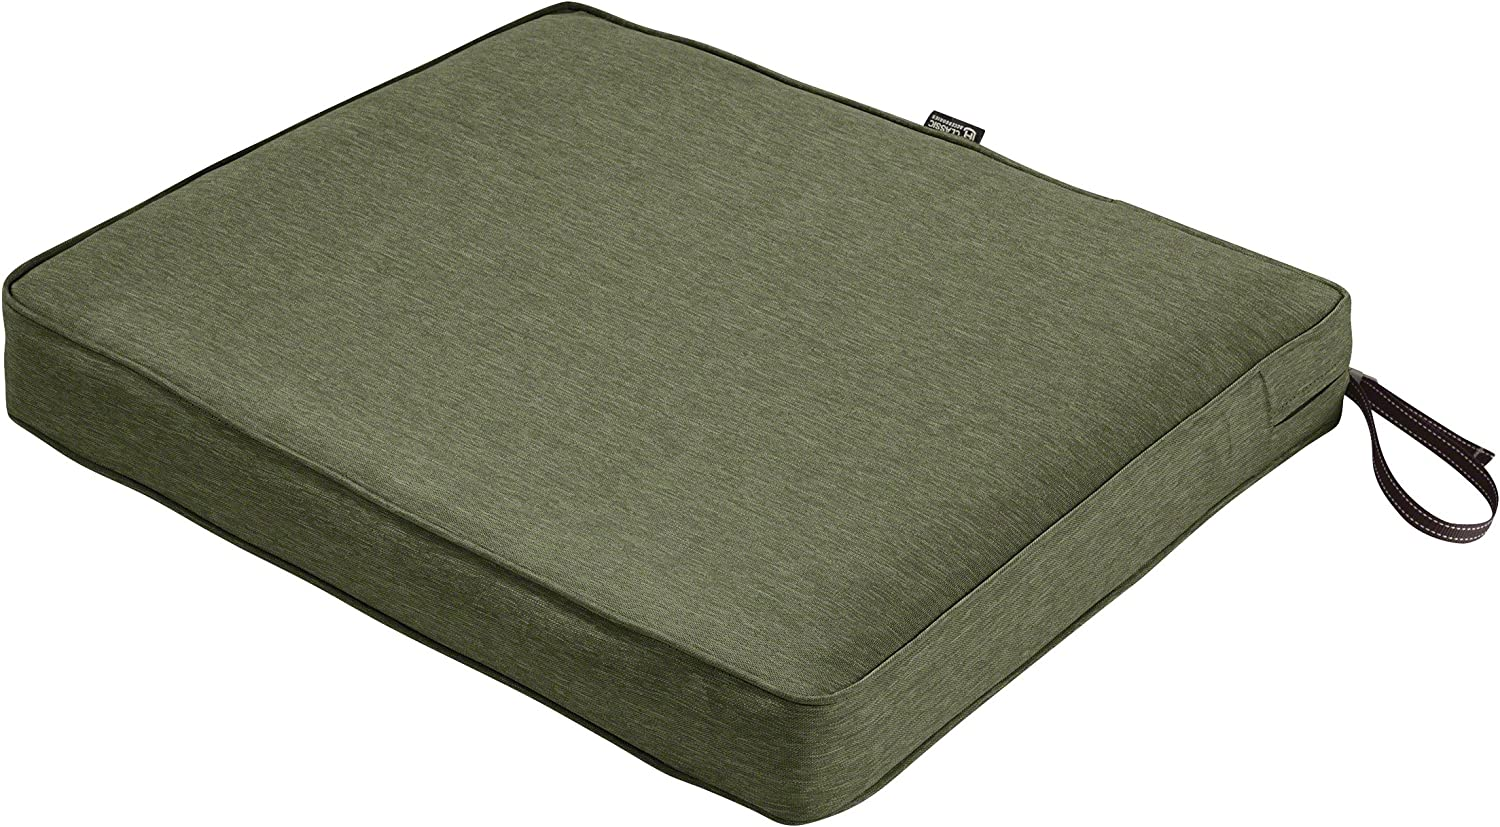 Classic Accessories Montlake Water-Resistant 21 x 19 x 3 Inch Rectangle Outdoor Seat Cushion, Patio Furniture Chair Cushion, Heather Fern Green